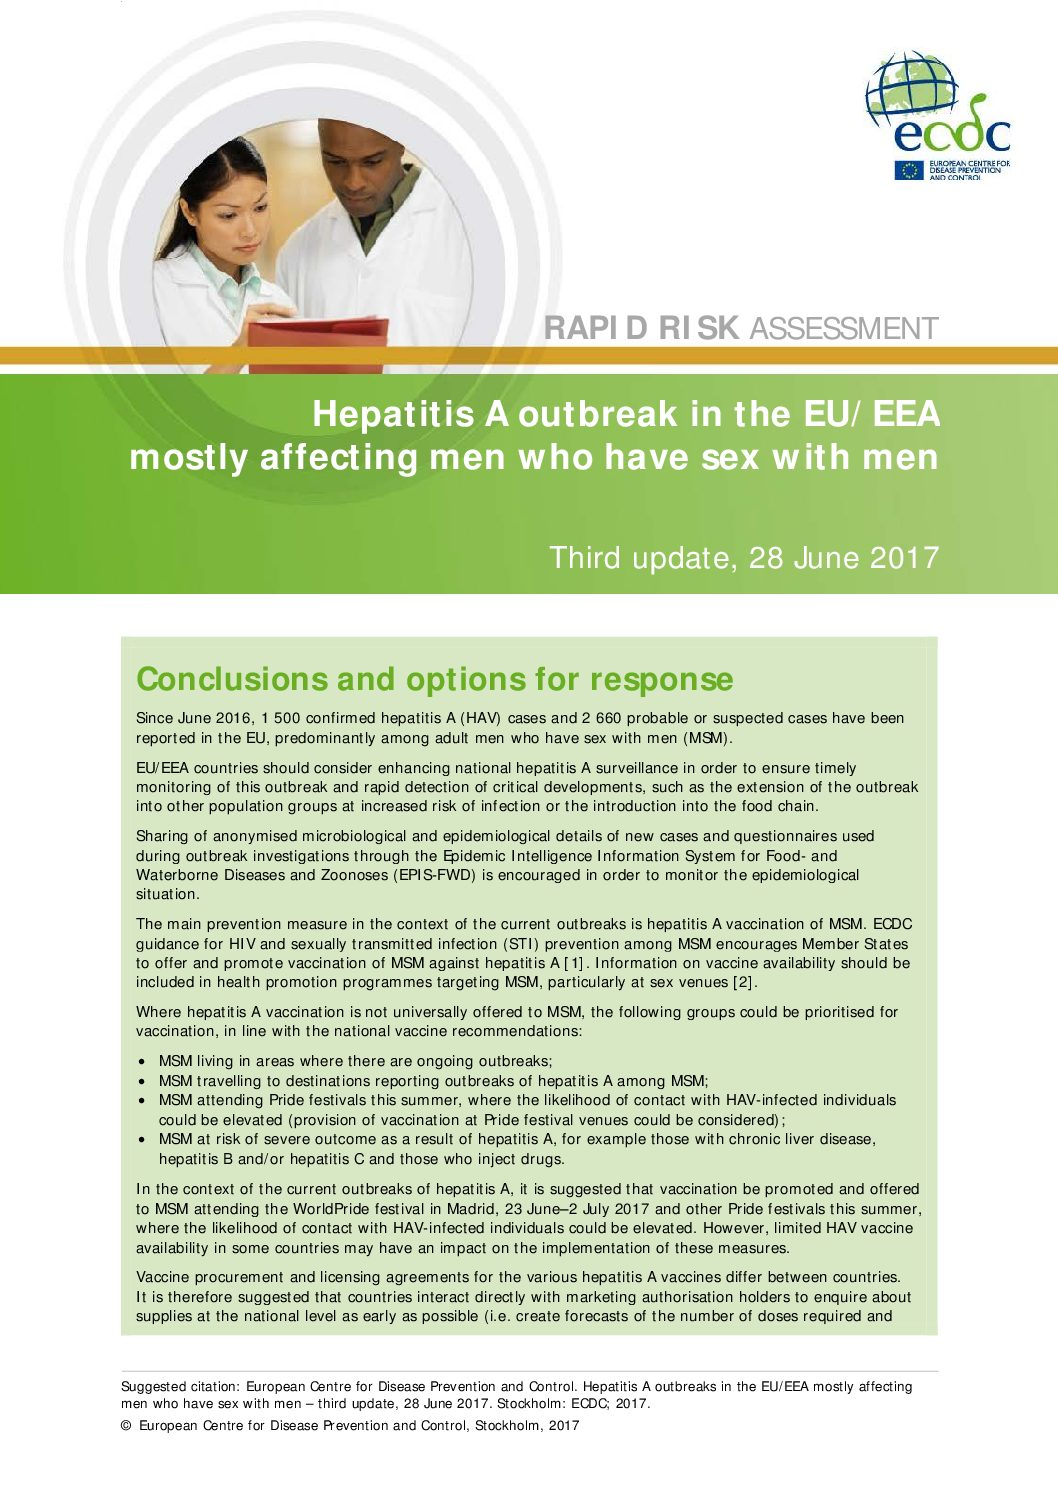 Hepatitis A outbreak in the EU/EEA mostly affecting men who have sex with men. Third update, 28 June 2017